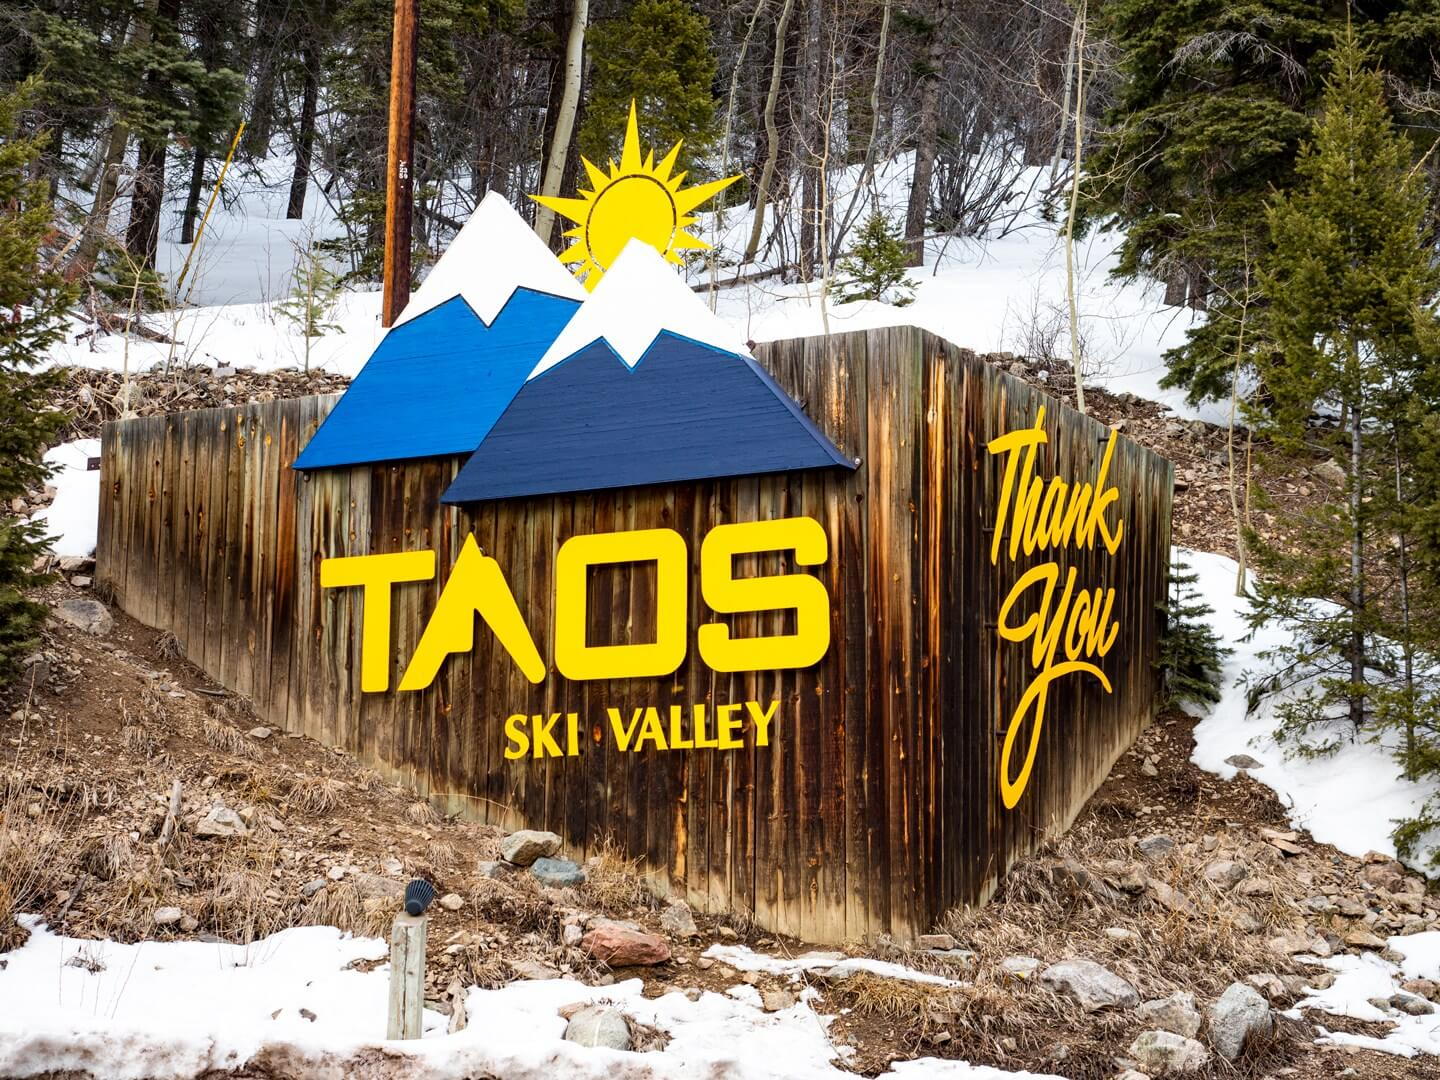 Taos Ski Valley Sign at entrance of resort in New Mexico